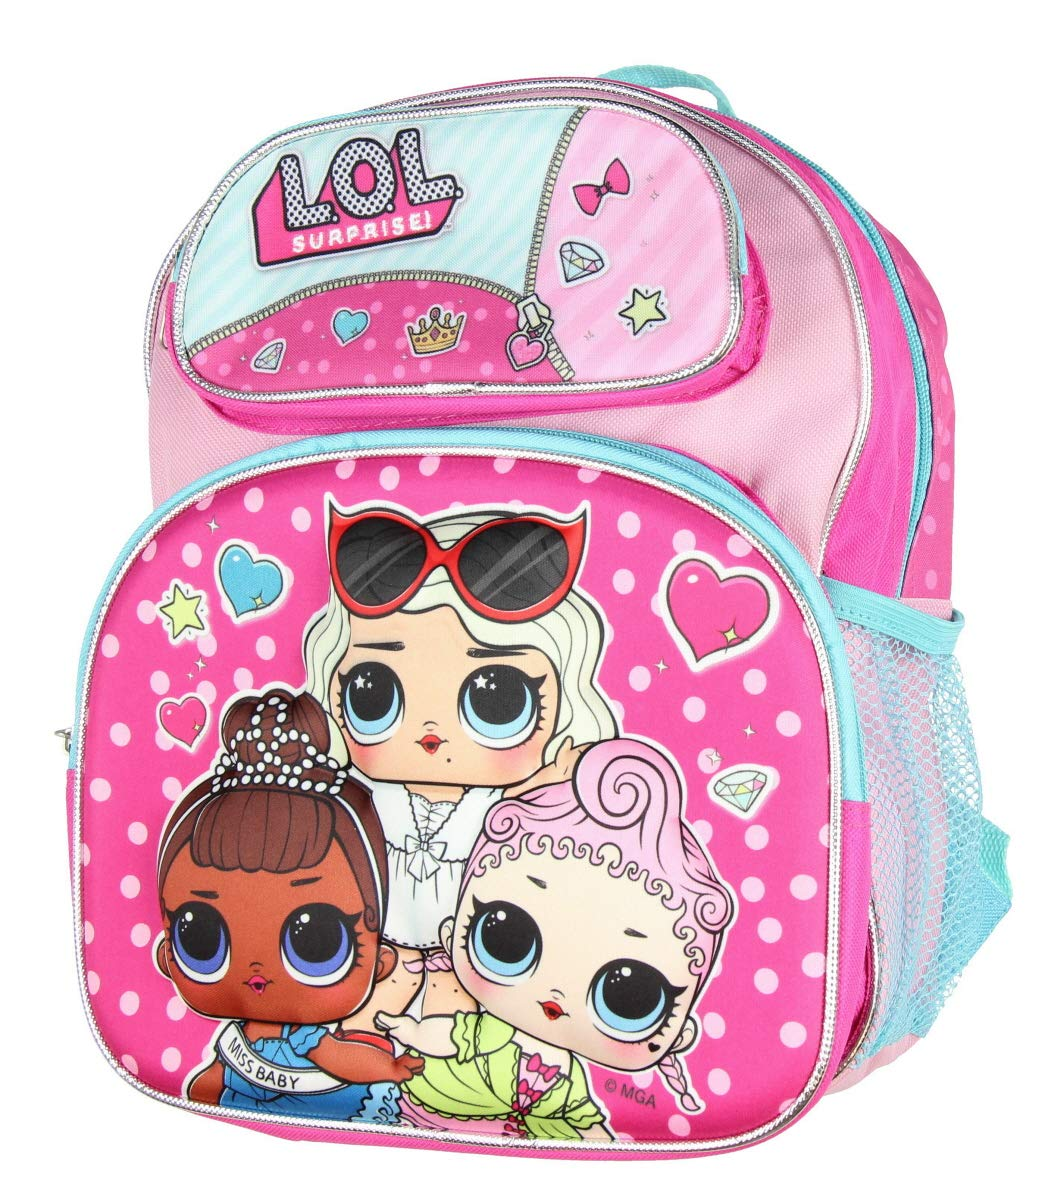 LOL Surprise Backpack 12 Inch Preschool 3D Dolls Accessory Innovations